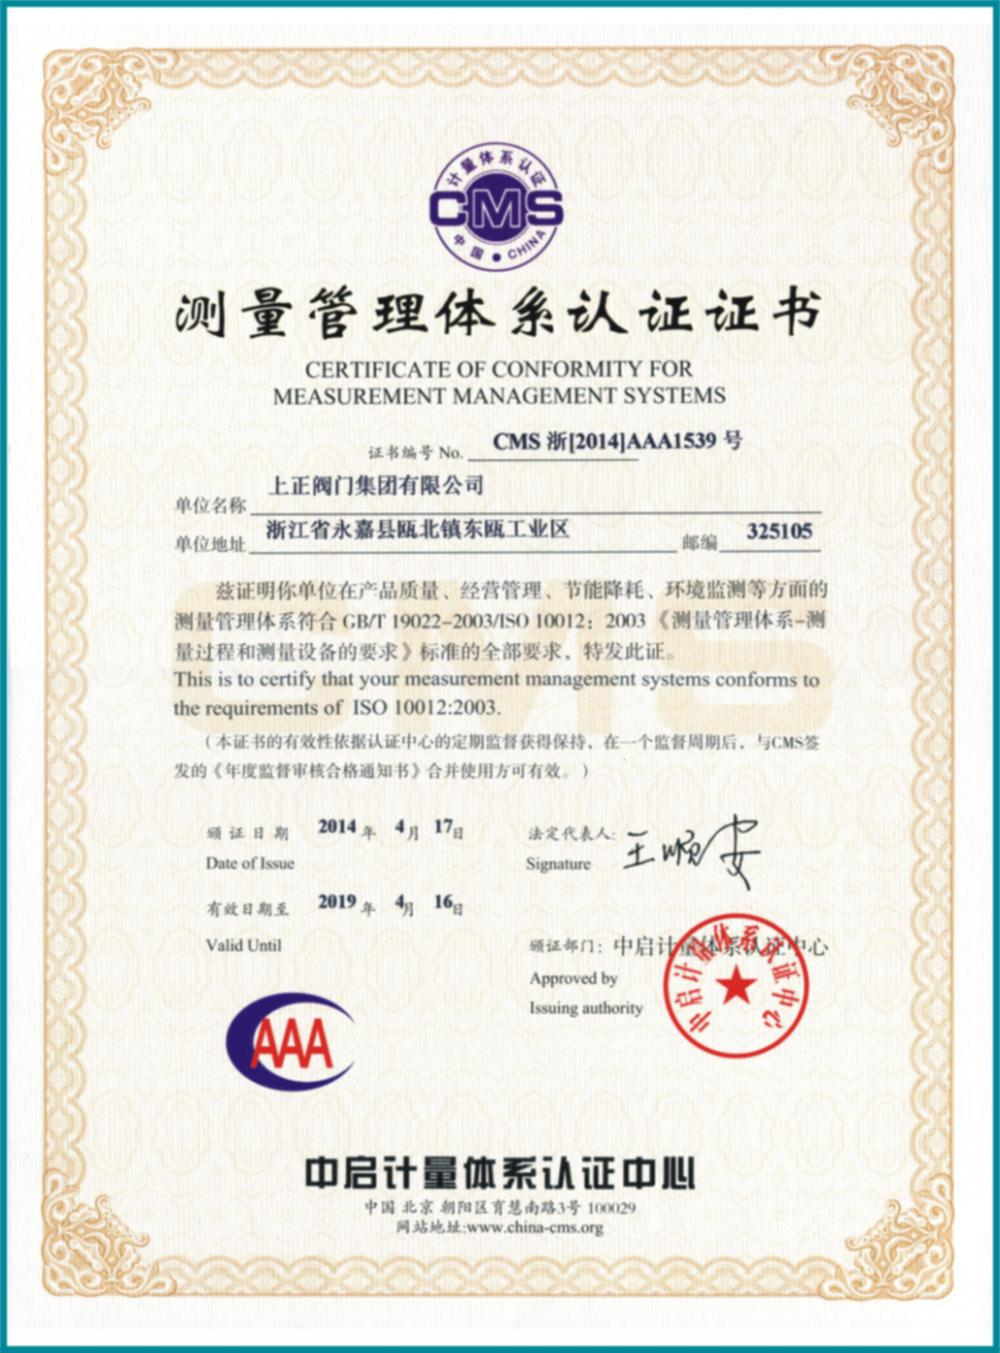 CERTIFICATION OF CONFORMITY MEASURENT MANAGEMENT SYSTEM